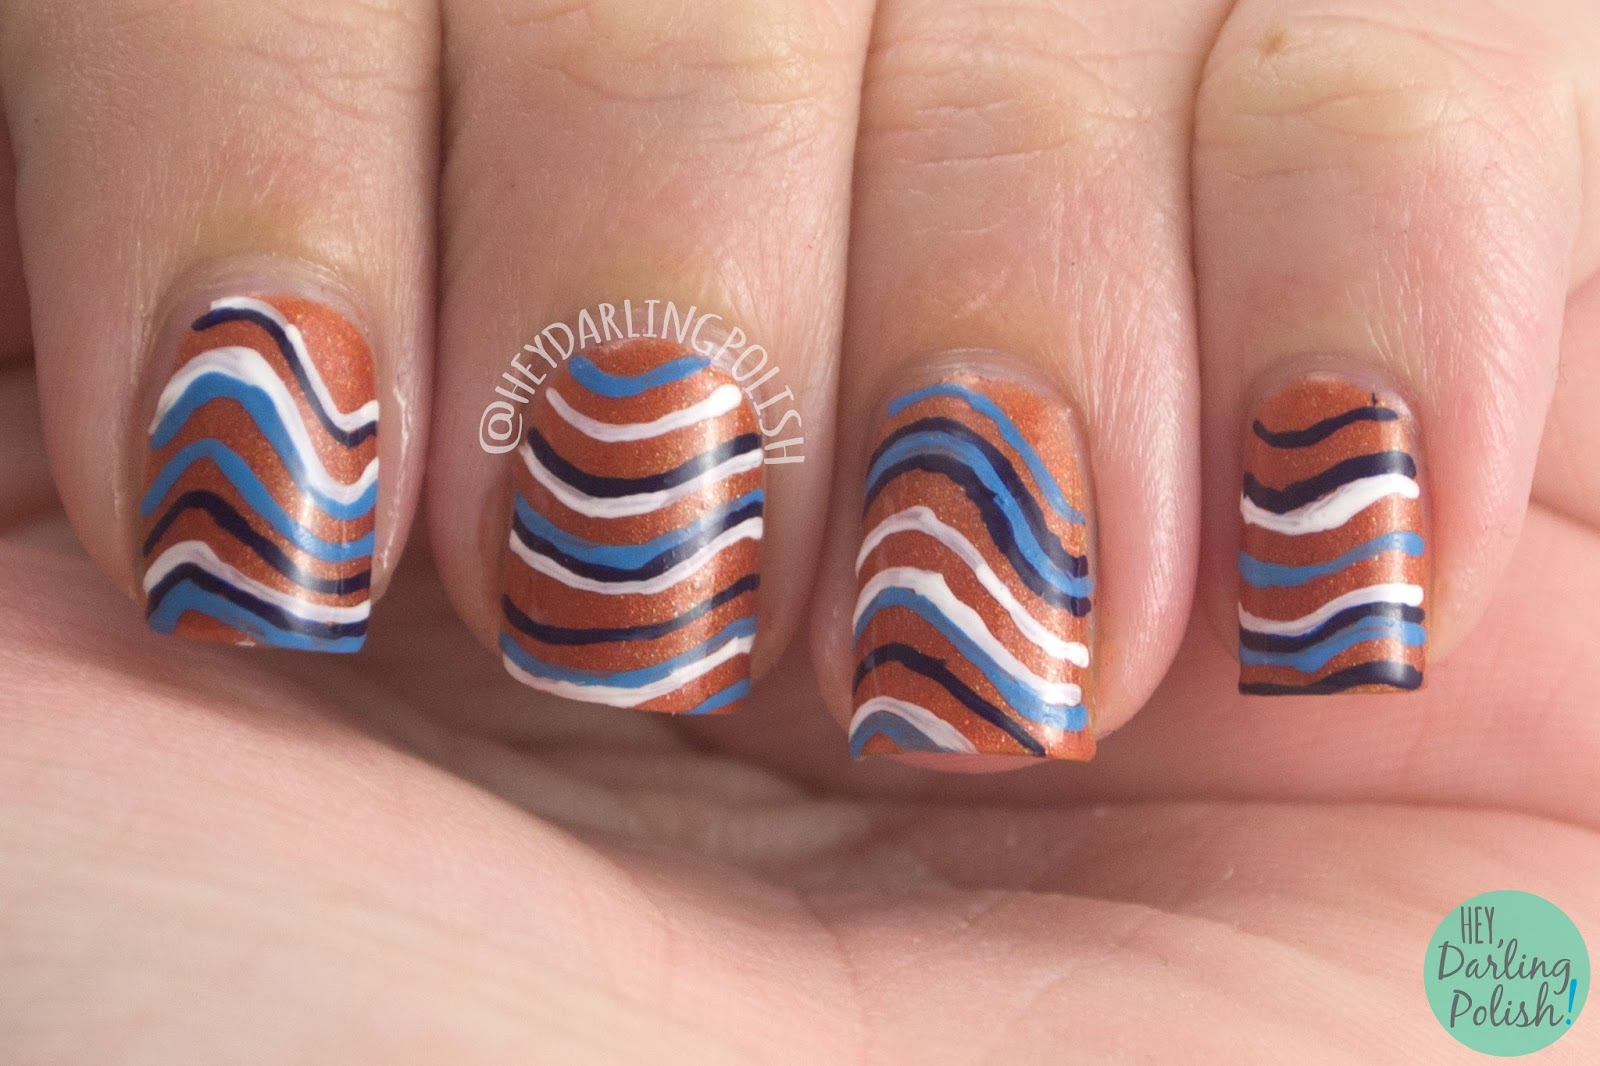 nails, nail polish, nail art, stripes, waves, hey darling polish, the nail challenge collaborative